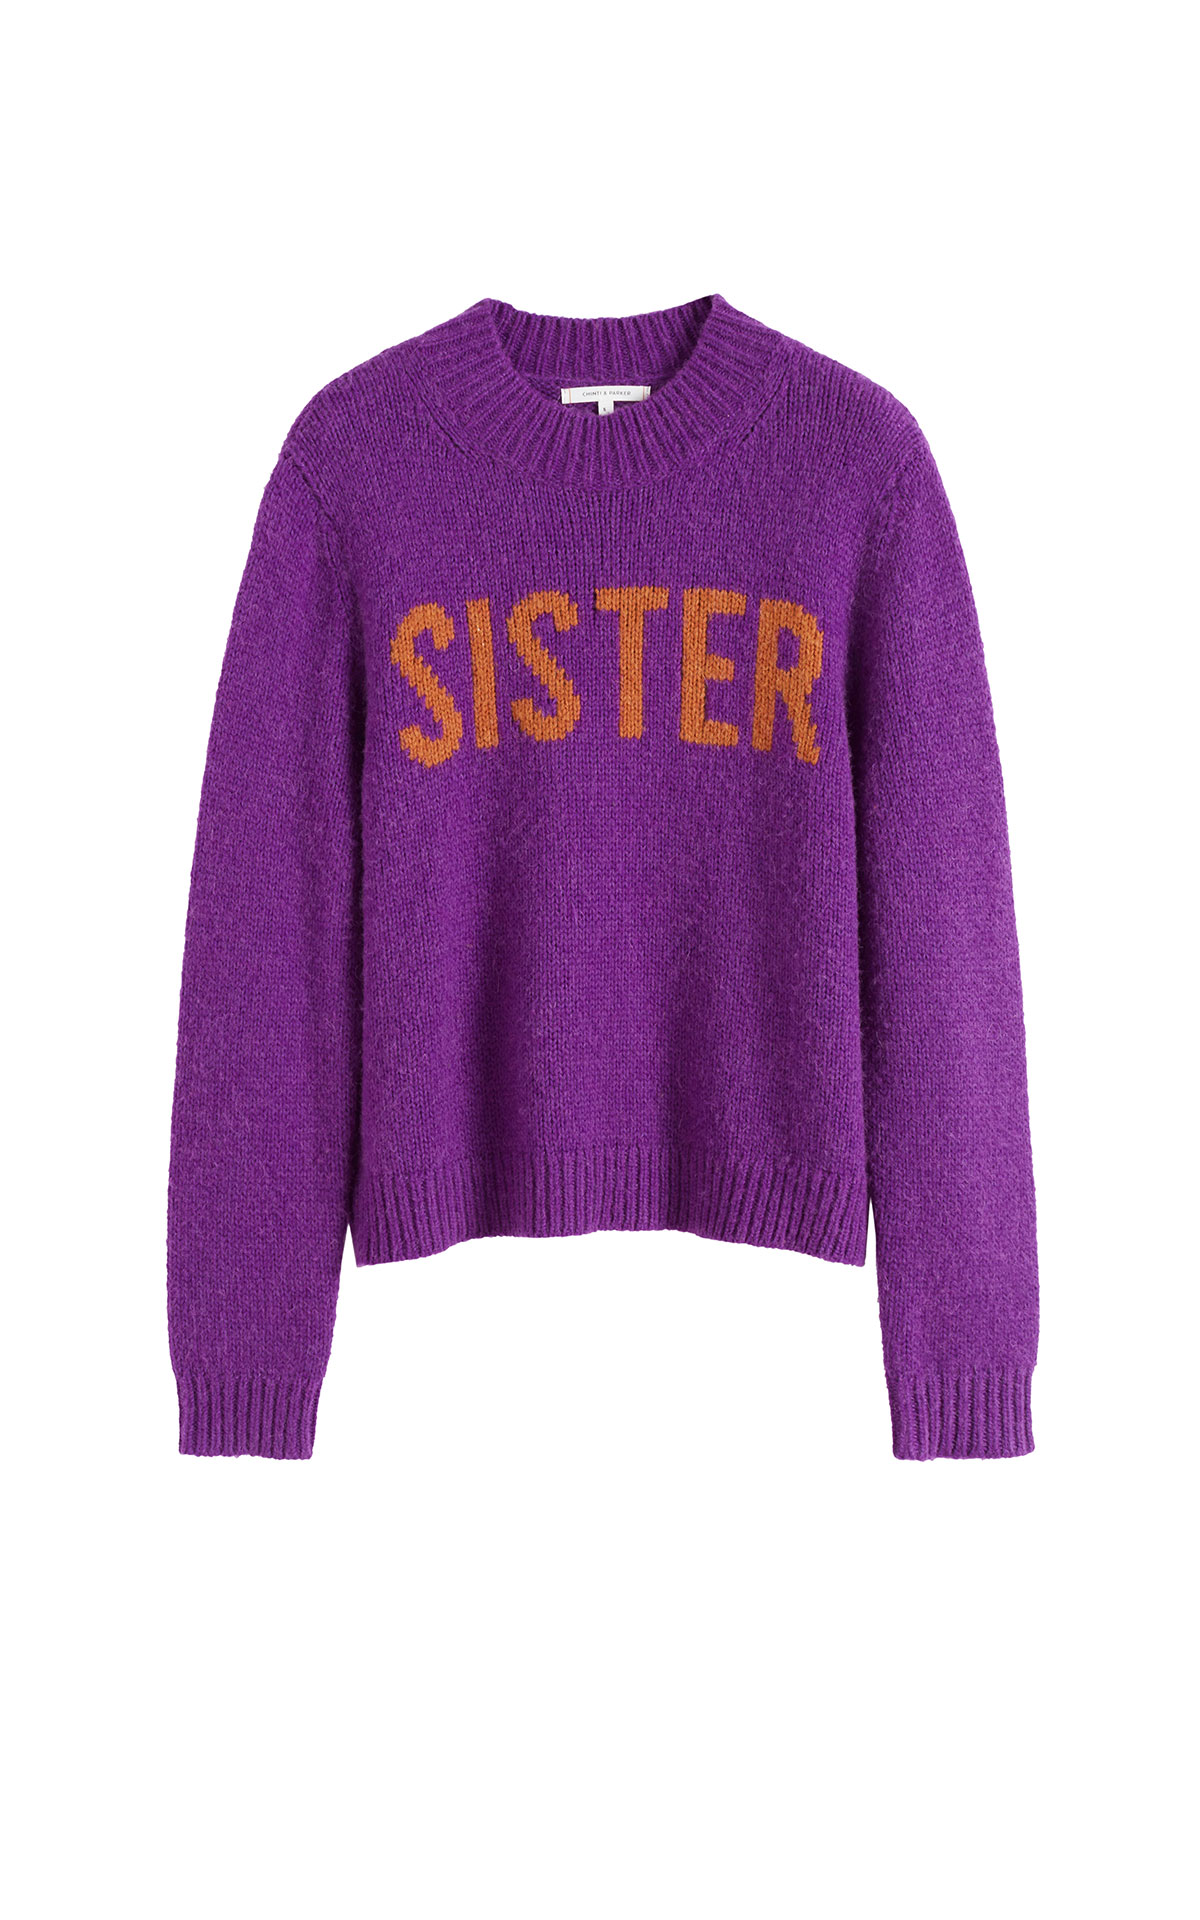 Chinti & Parker Purple sister sweater from Bicester Village